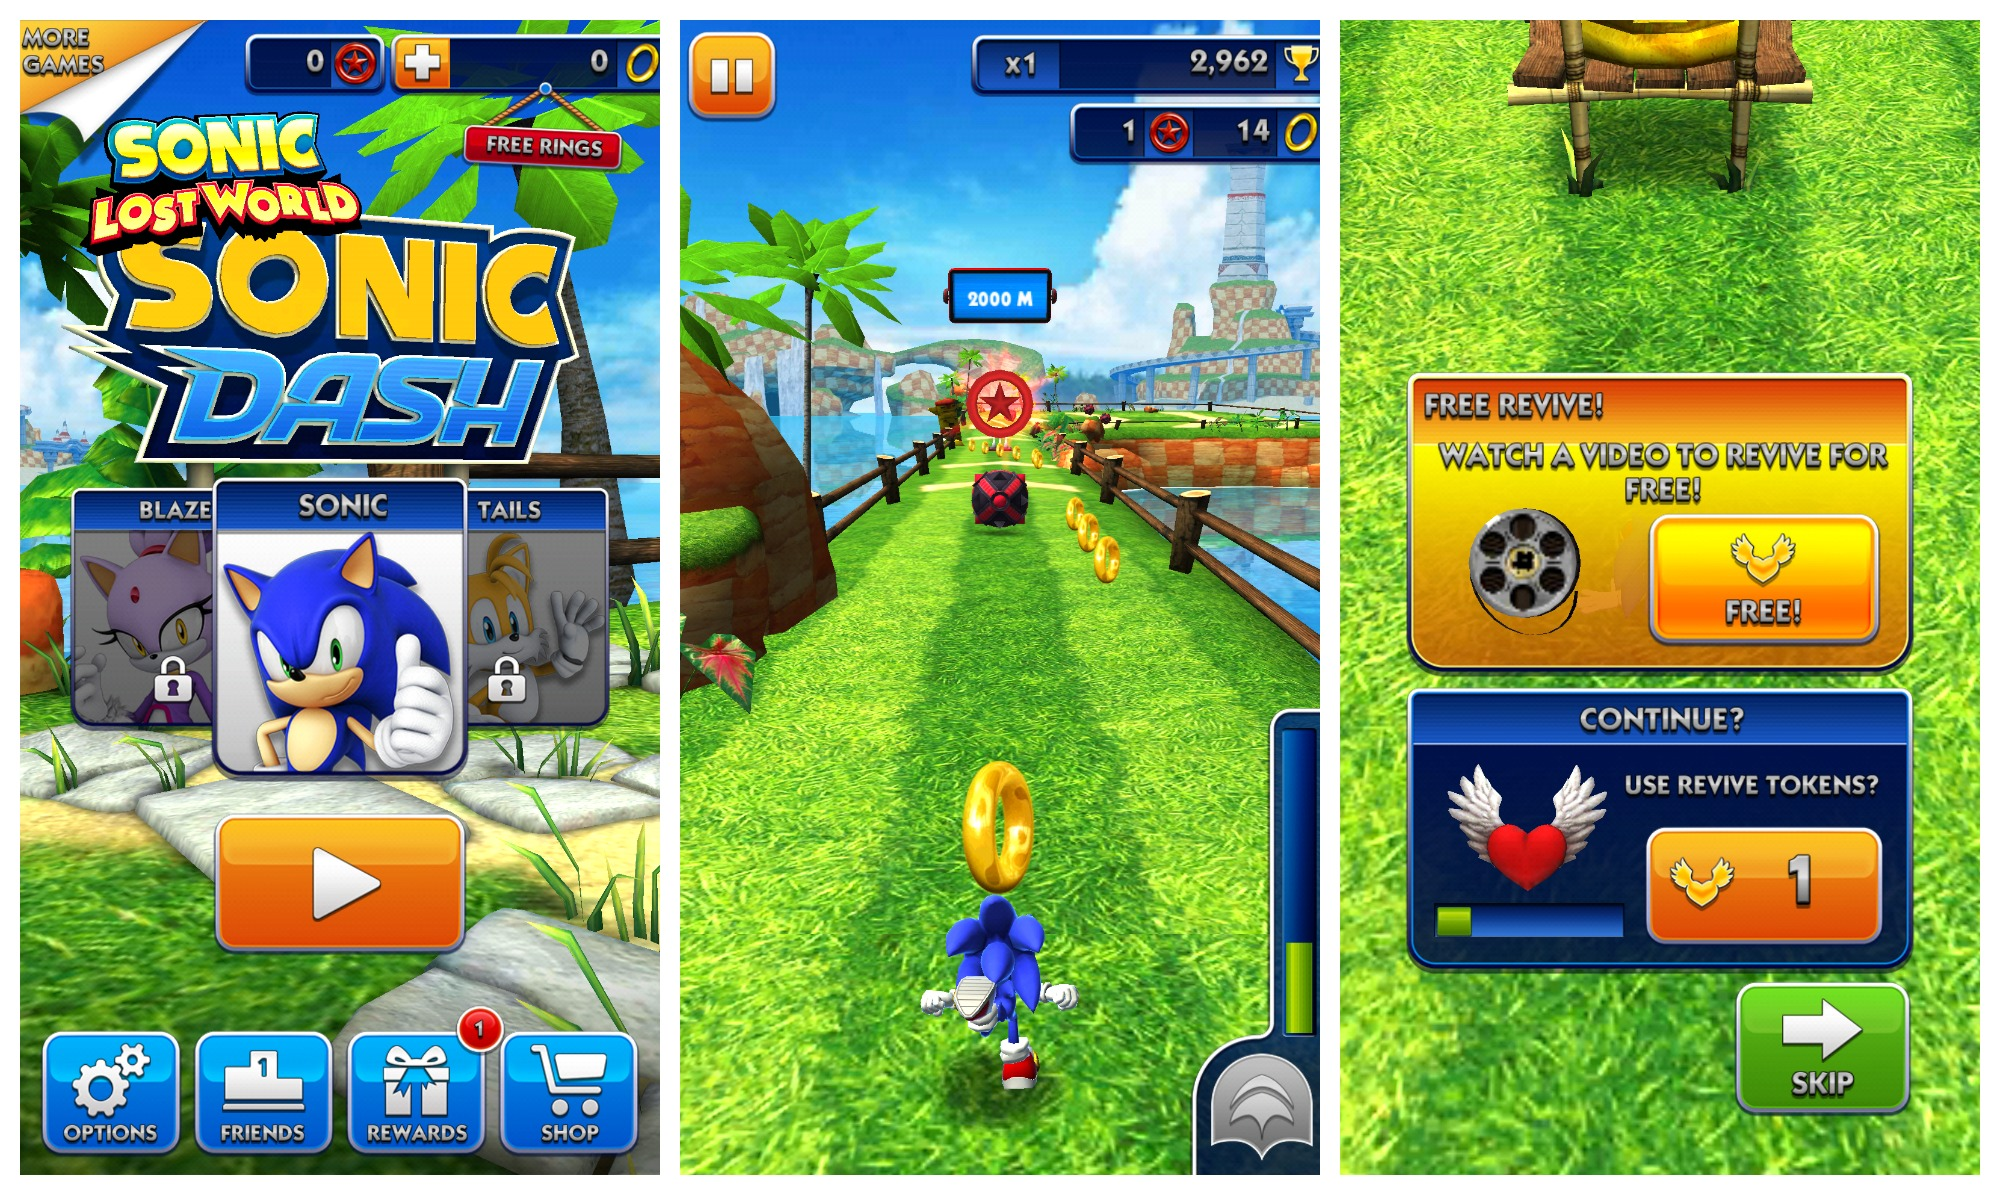 Sonic dash for android download apk free.